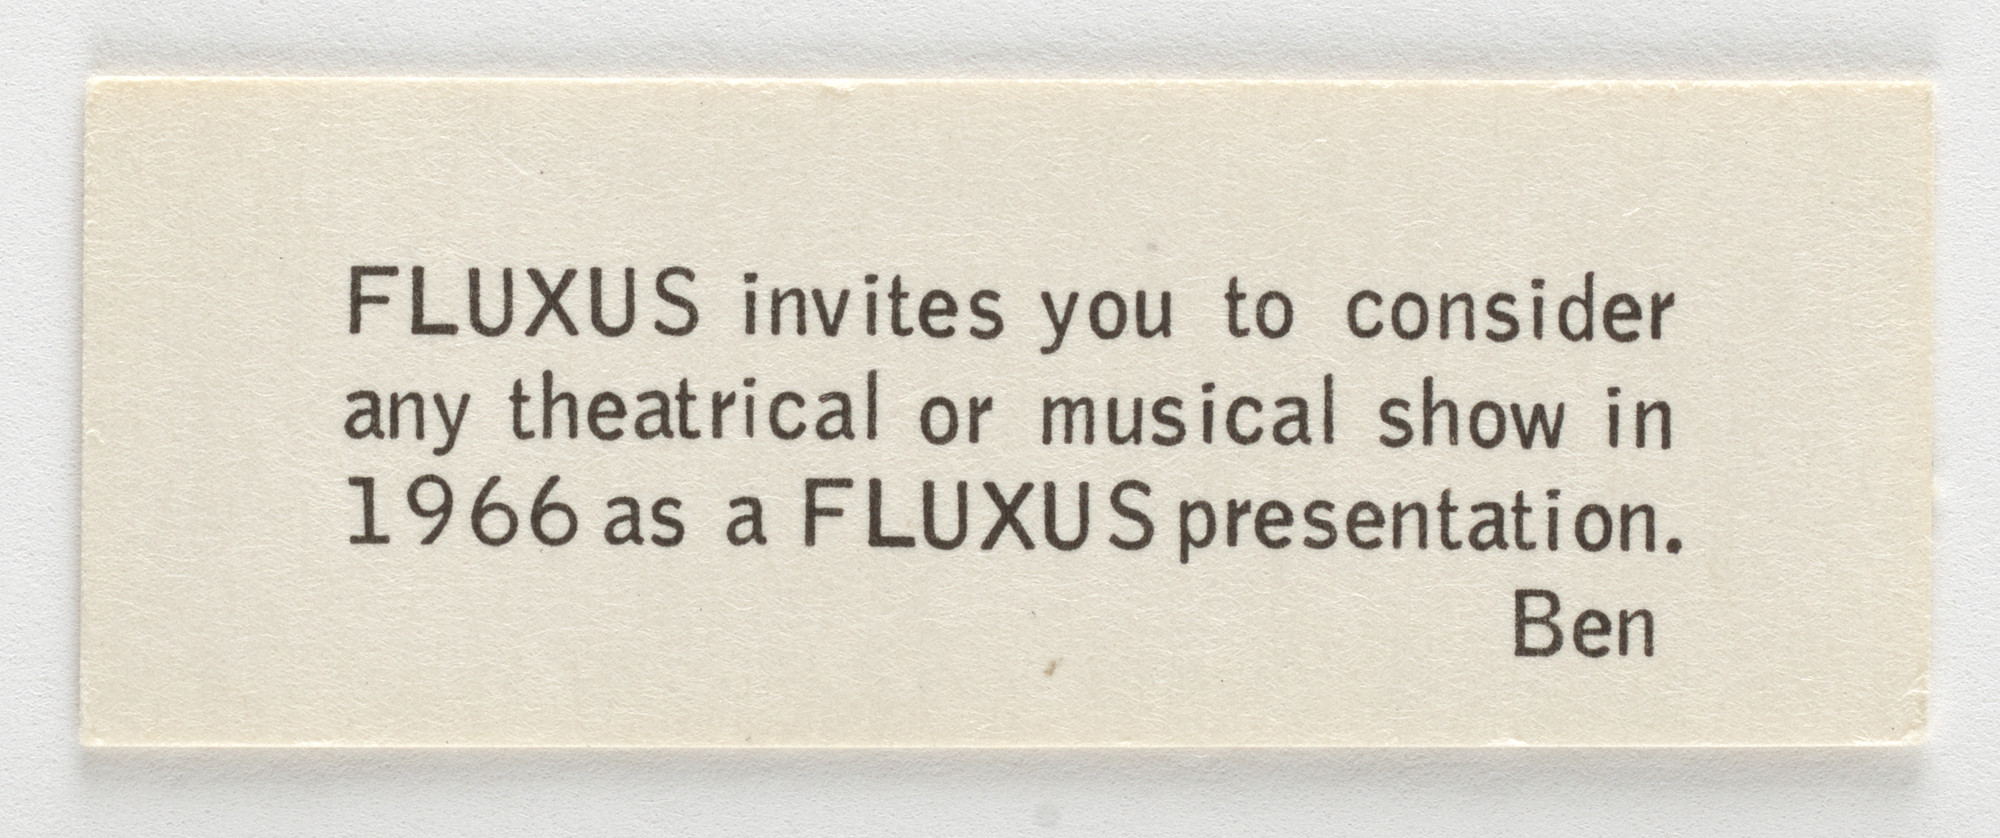 Ben Vautier. Fluxus Invites You to Consider Any Theatrical or Musical Show in 1966 as a Fluxus Presentation. 1966